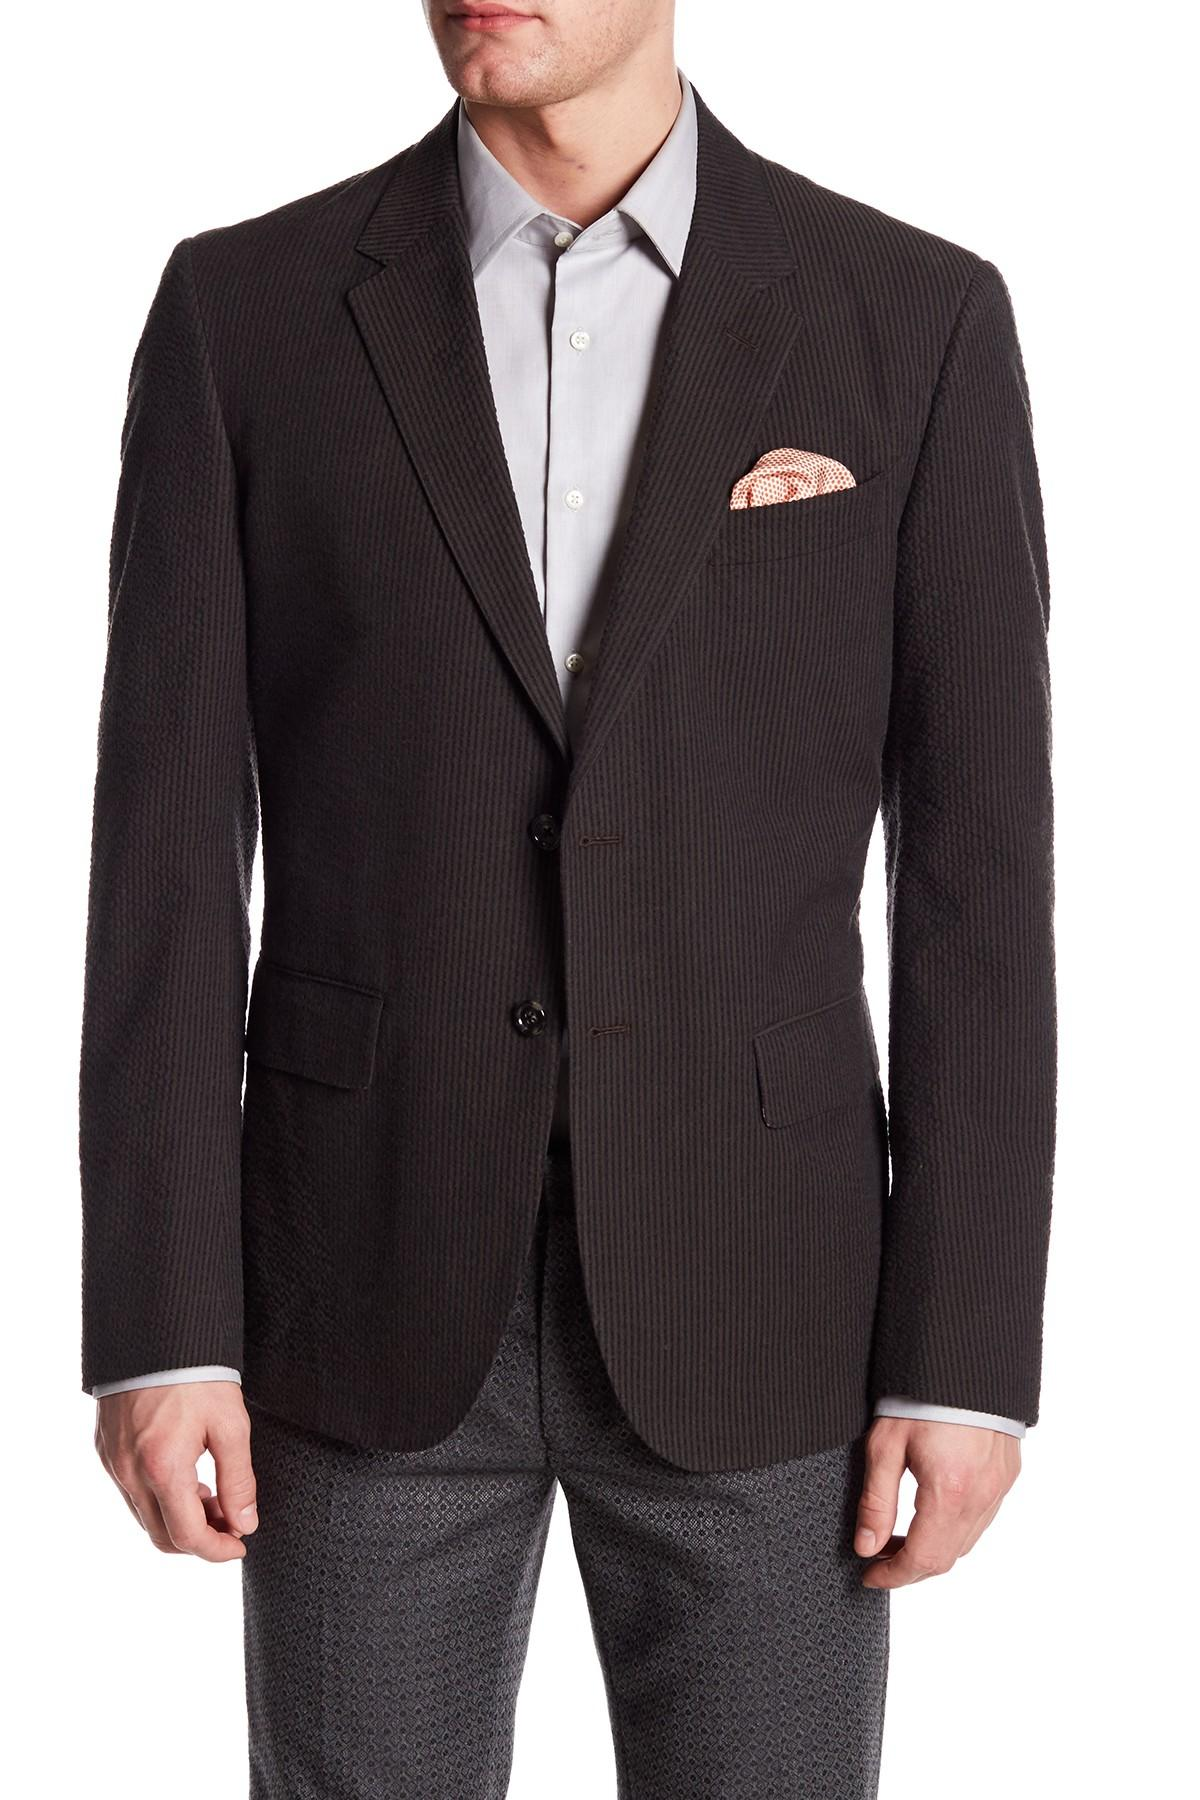 High-quality cotton, linen, silk and wool fabrics give our men's sport coats a premium look and feel combined with durable quality. We offer sport coats on sale in multiple jacket and vent styles, along with plenty of sizing options to perfectly fit your build.